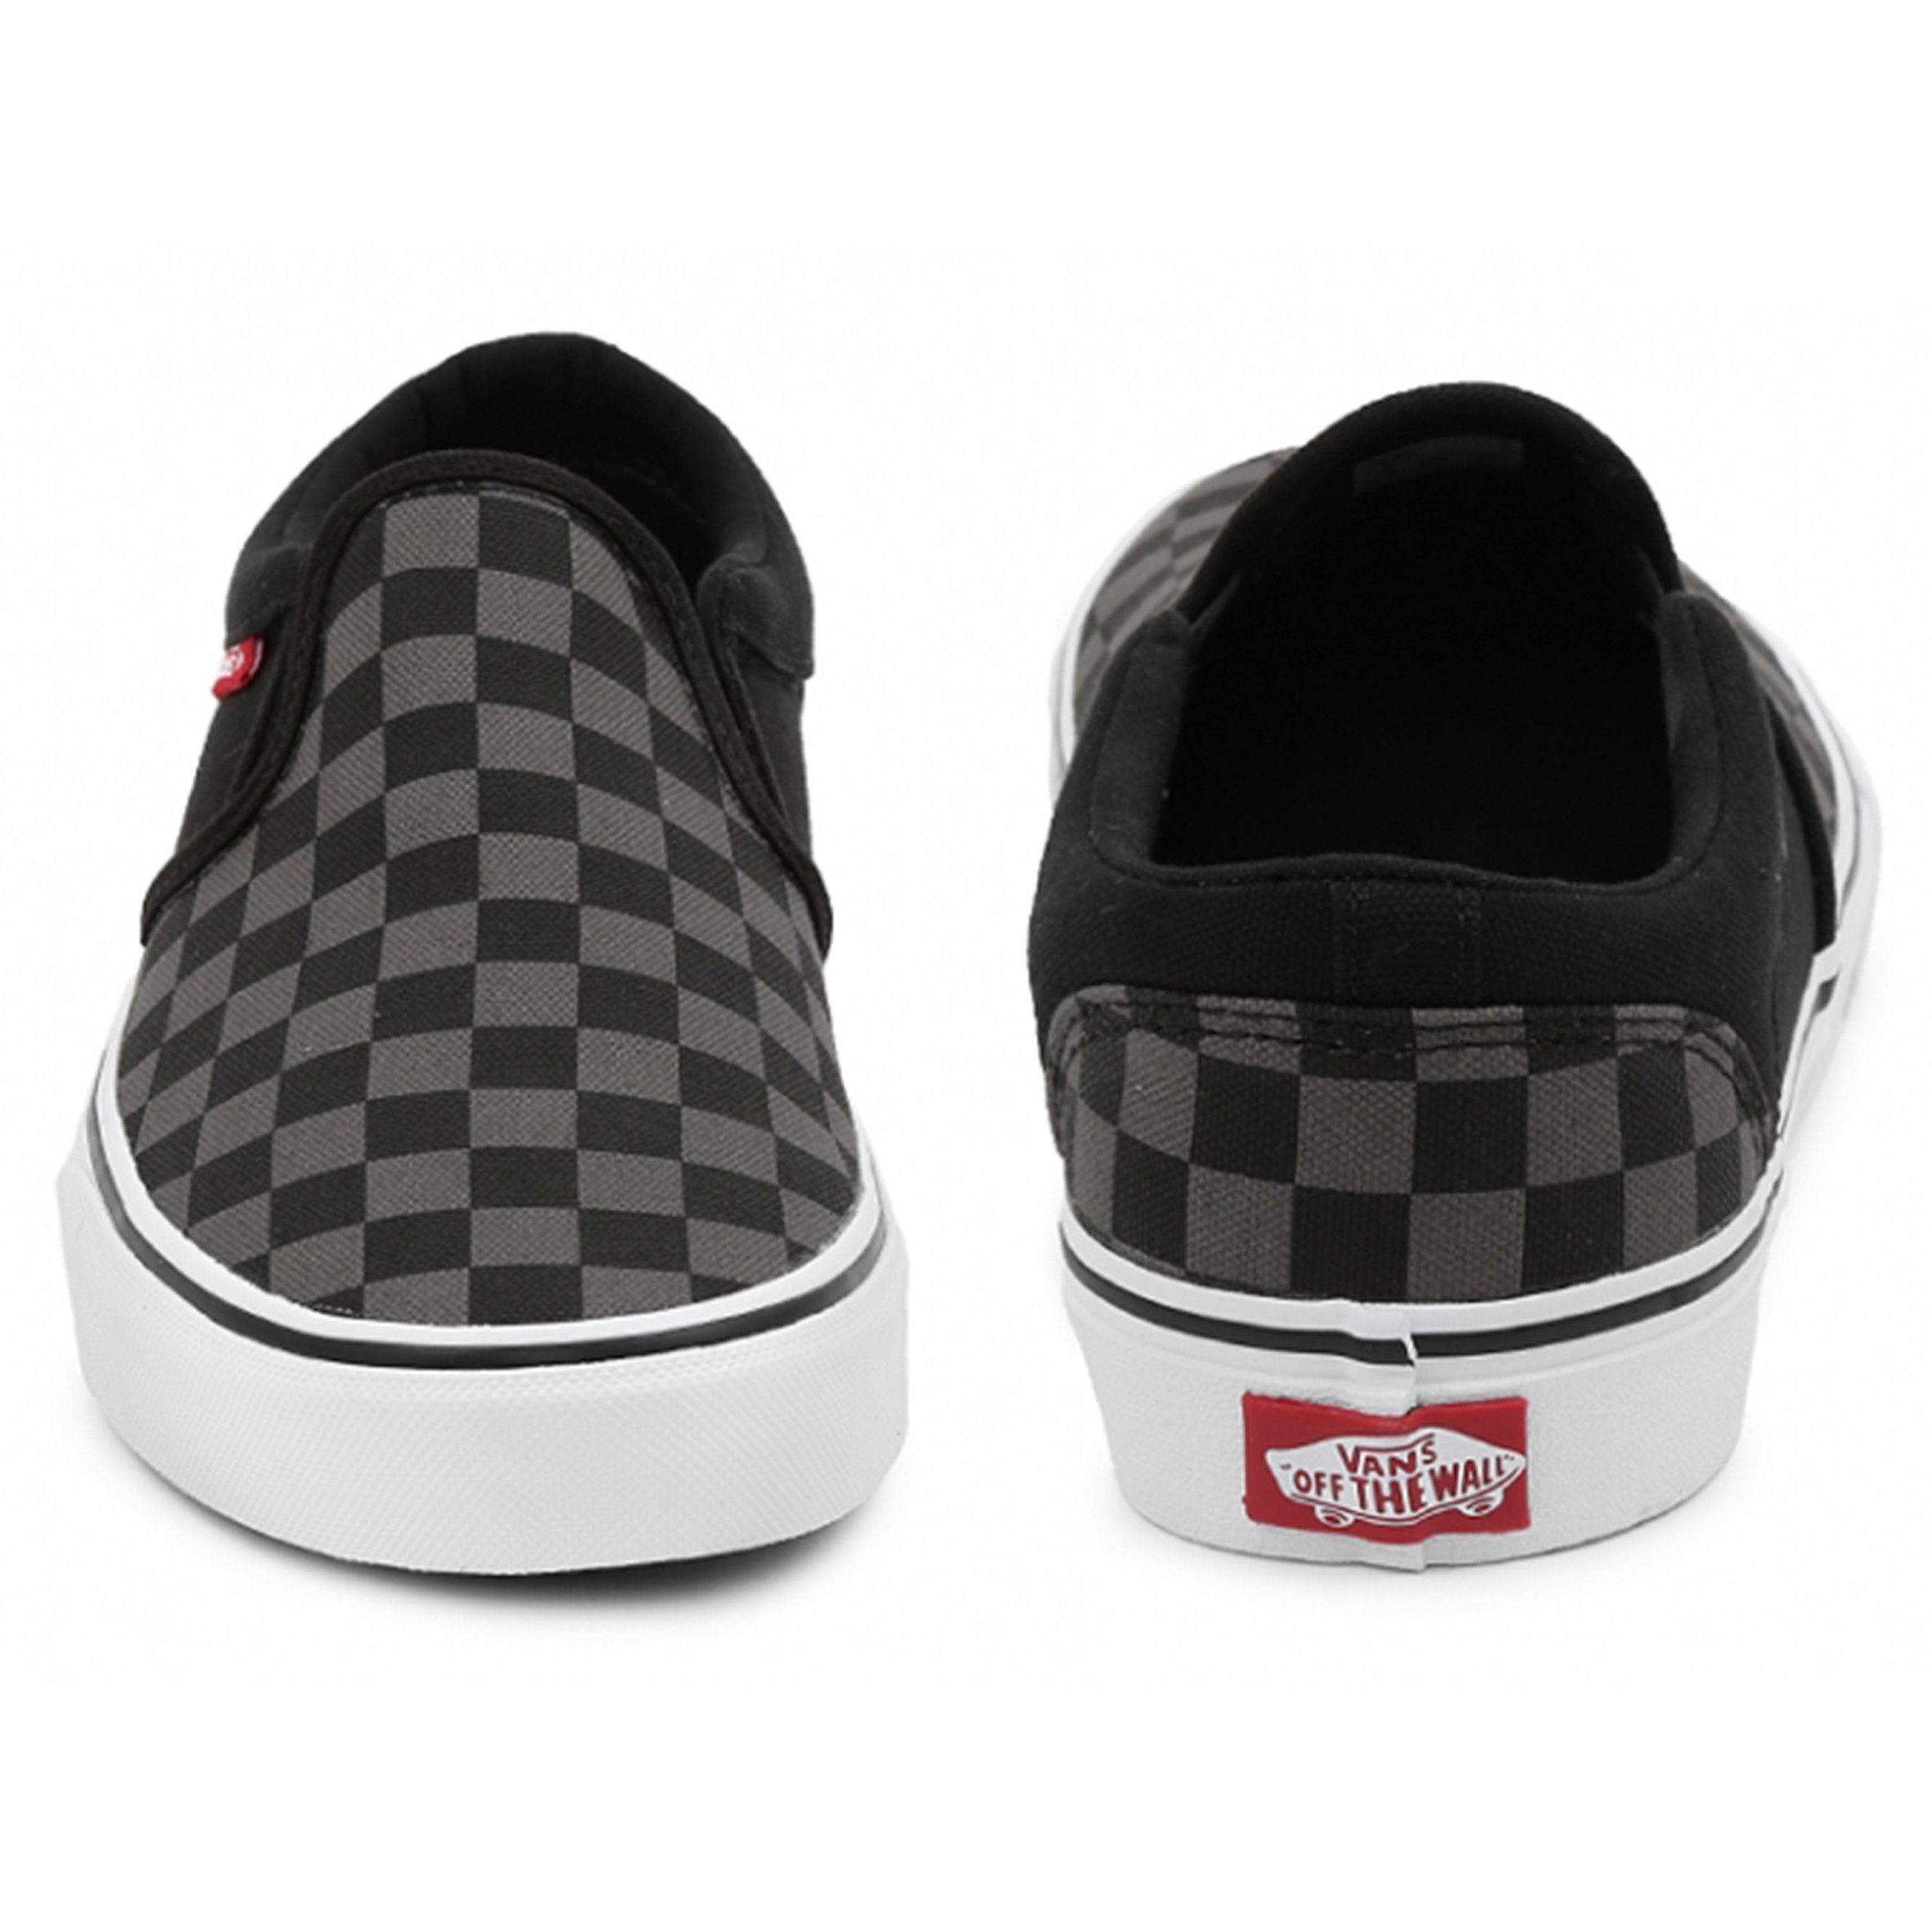 acf06ef23304 Vans Mens Asher Canvas Slip On Shoes Trainers Check Black Grey ...